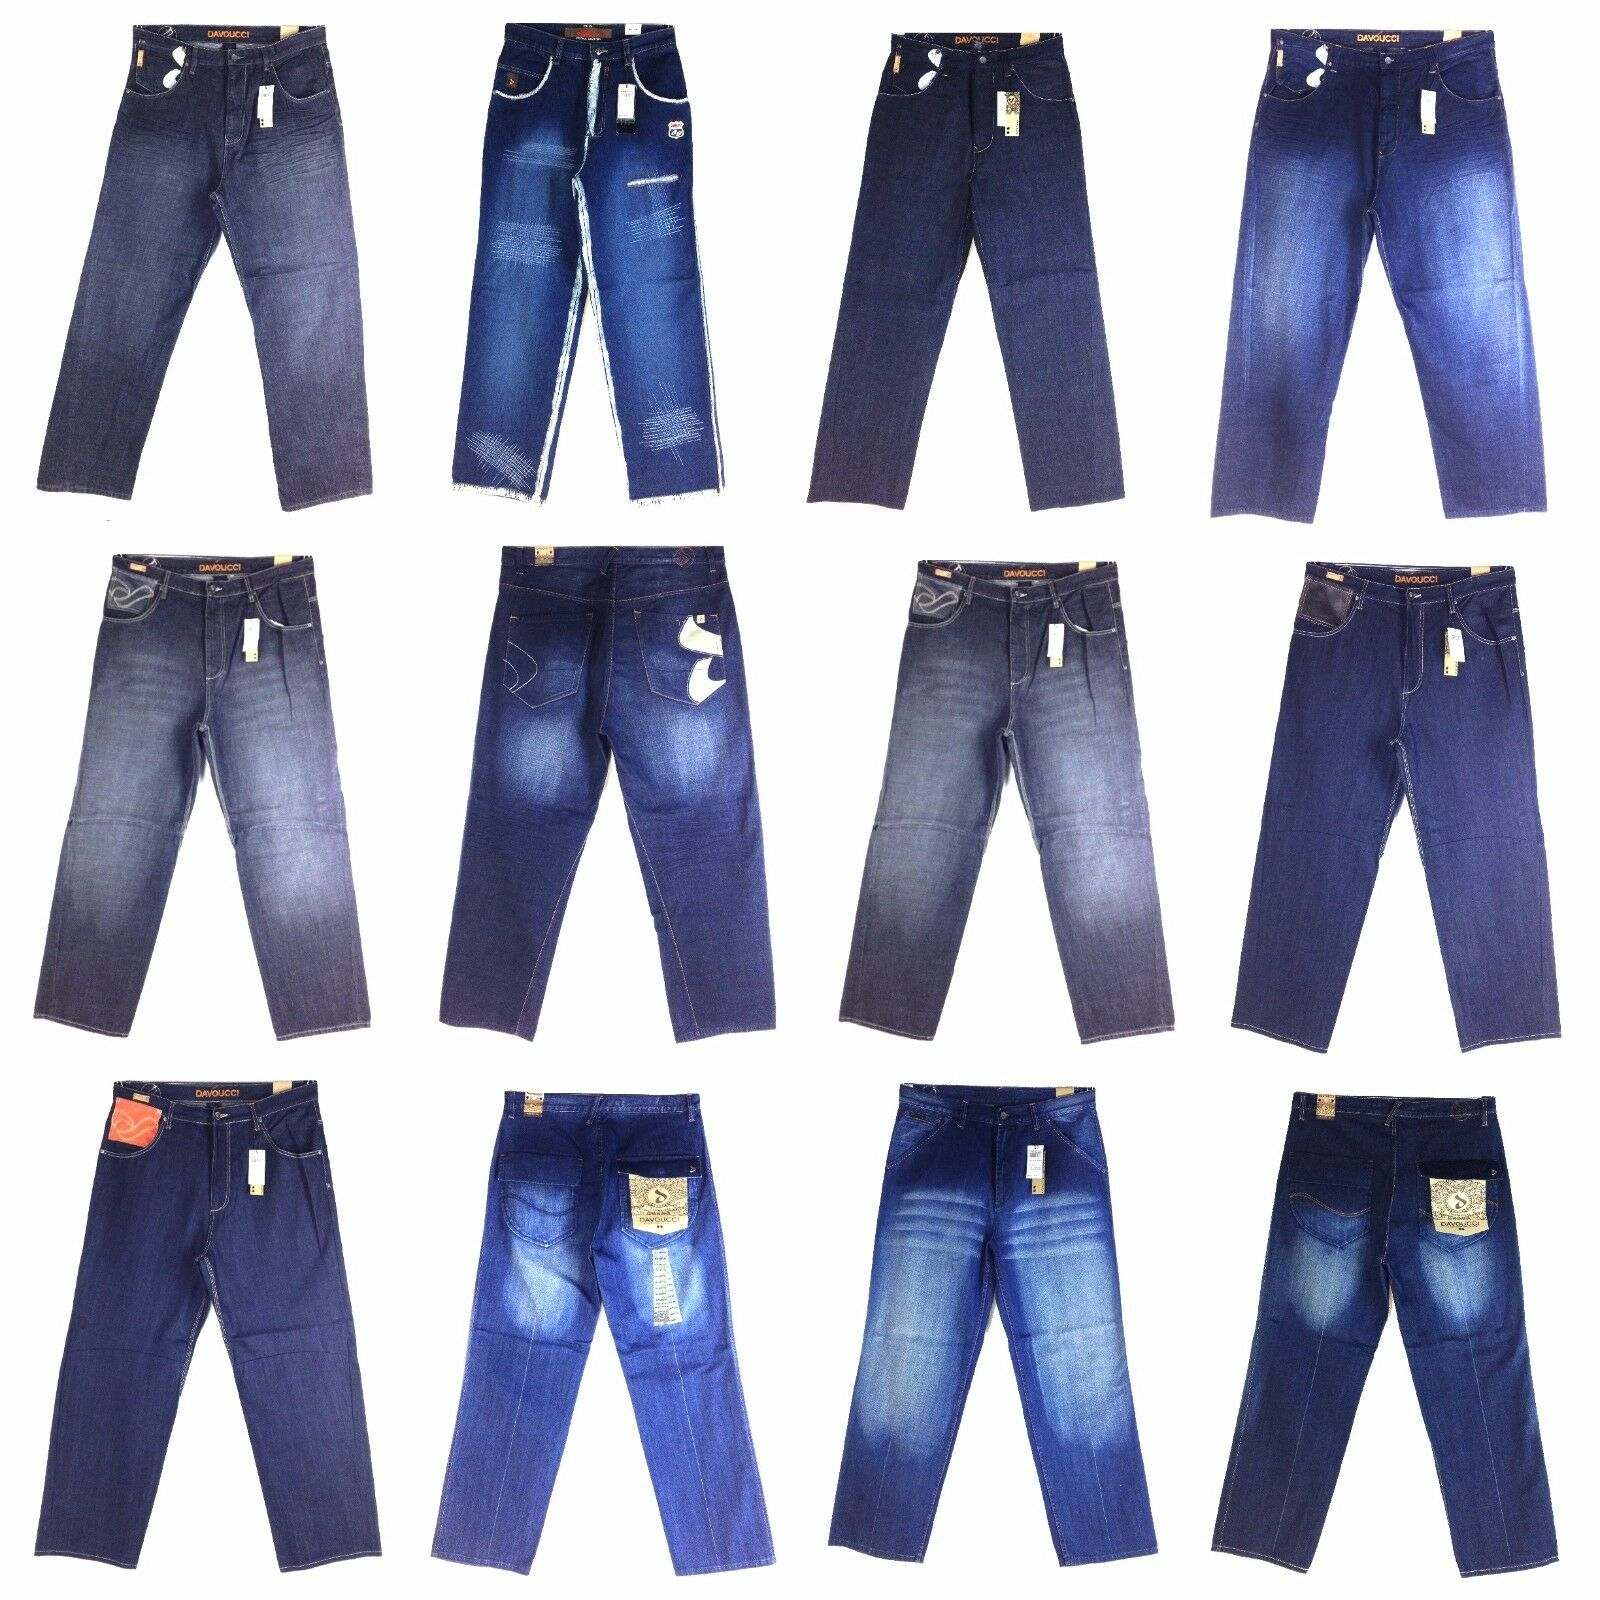 DAVOCCI, Vintage, Old School, Men's Designer New Jeans Assorted Styles Group [2]